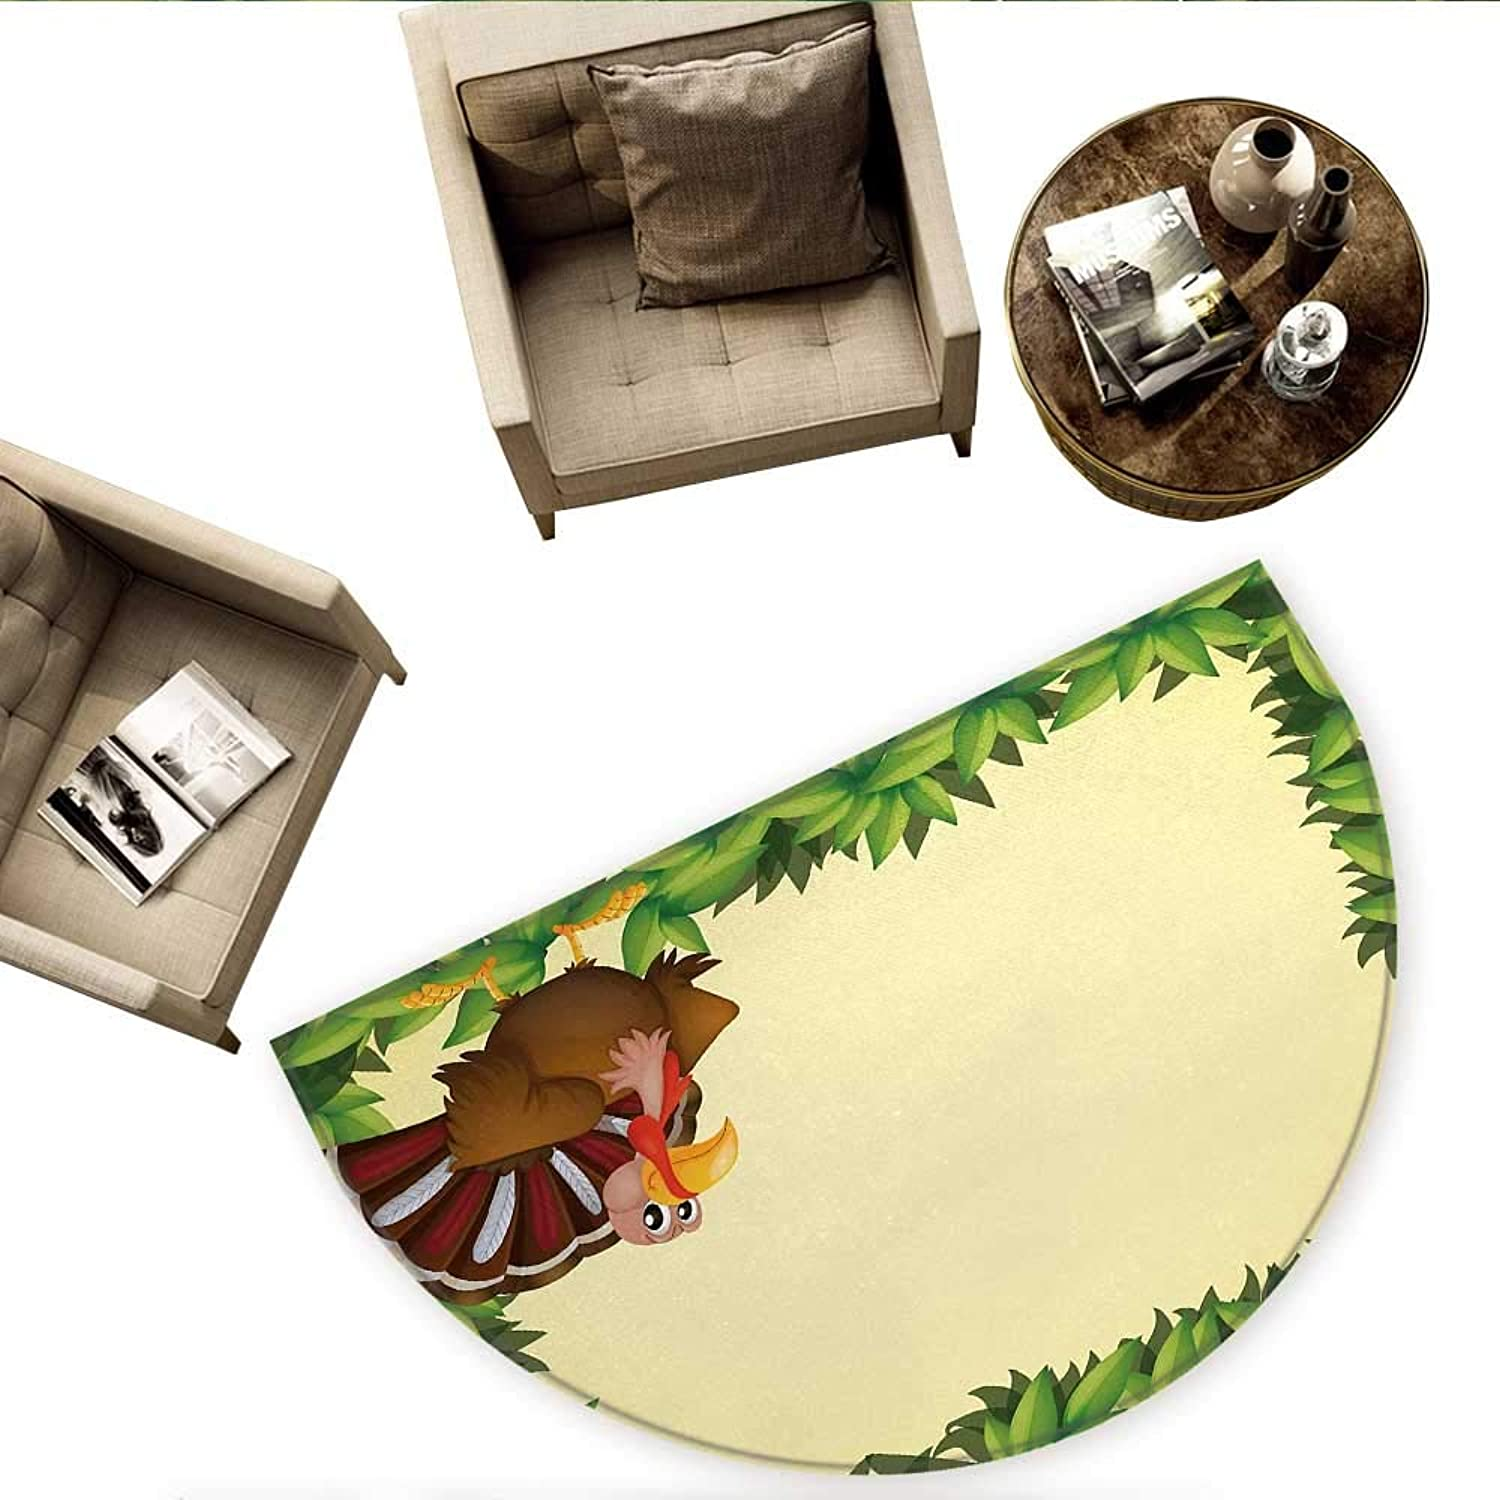 Kids Thanksgiving Semicircle Doormat Turkey with Happy Expression Green Foliage Fresh Leaves Halfmoon doormats H 63  xD 94.5  Green Pale Yellow Brown